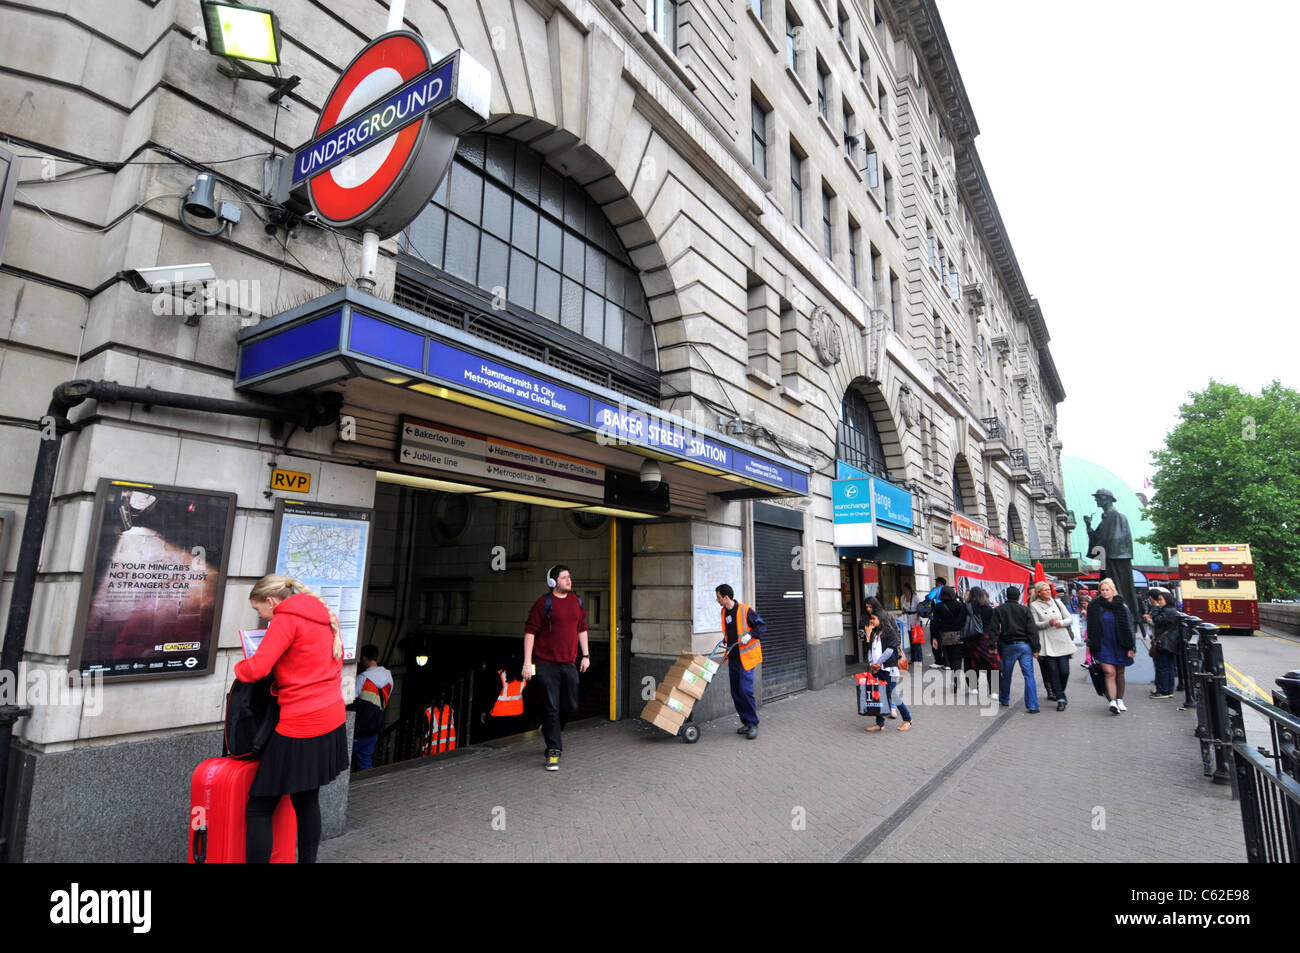 Baker Street Station station in Marylebone, London, Britain, UK - Stock Image